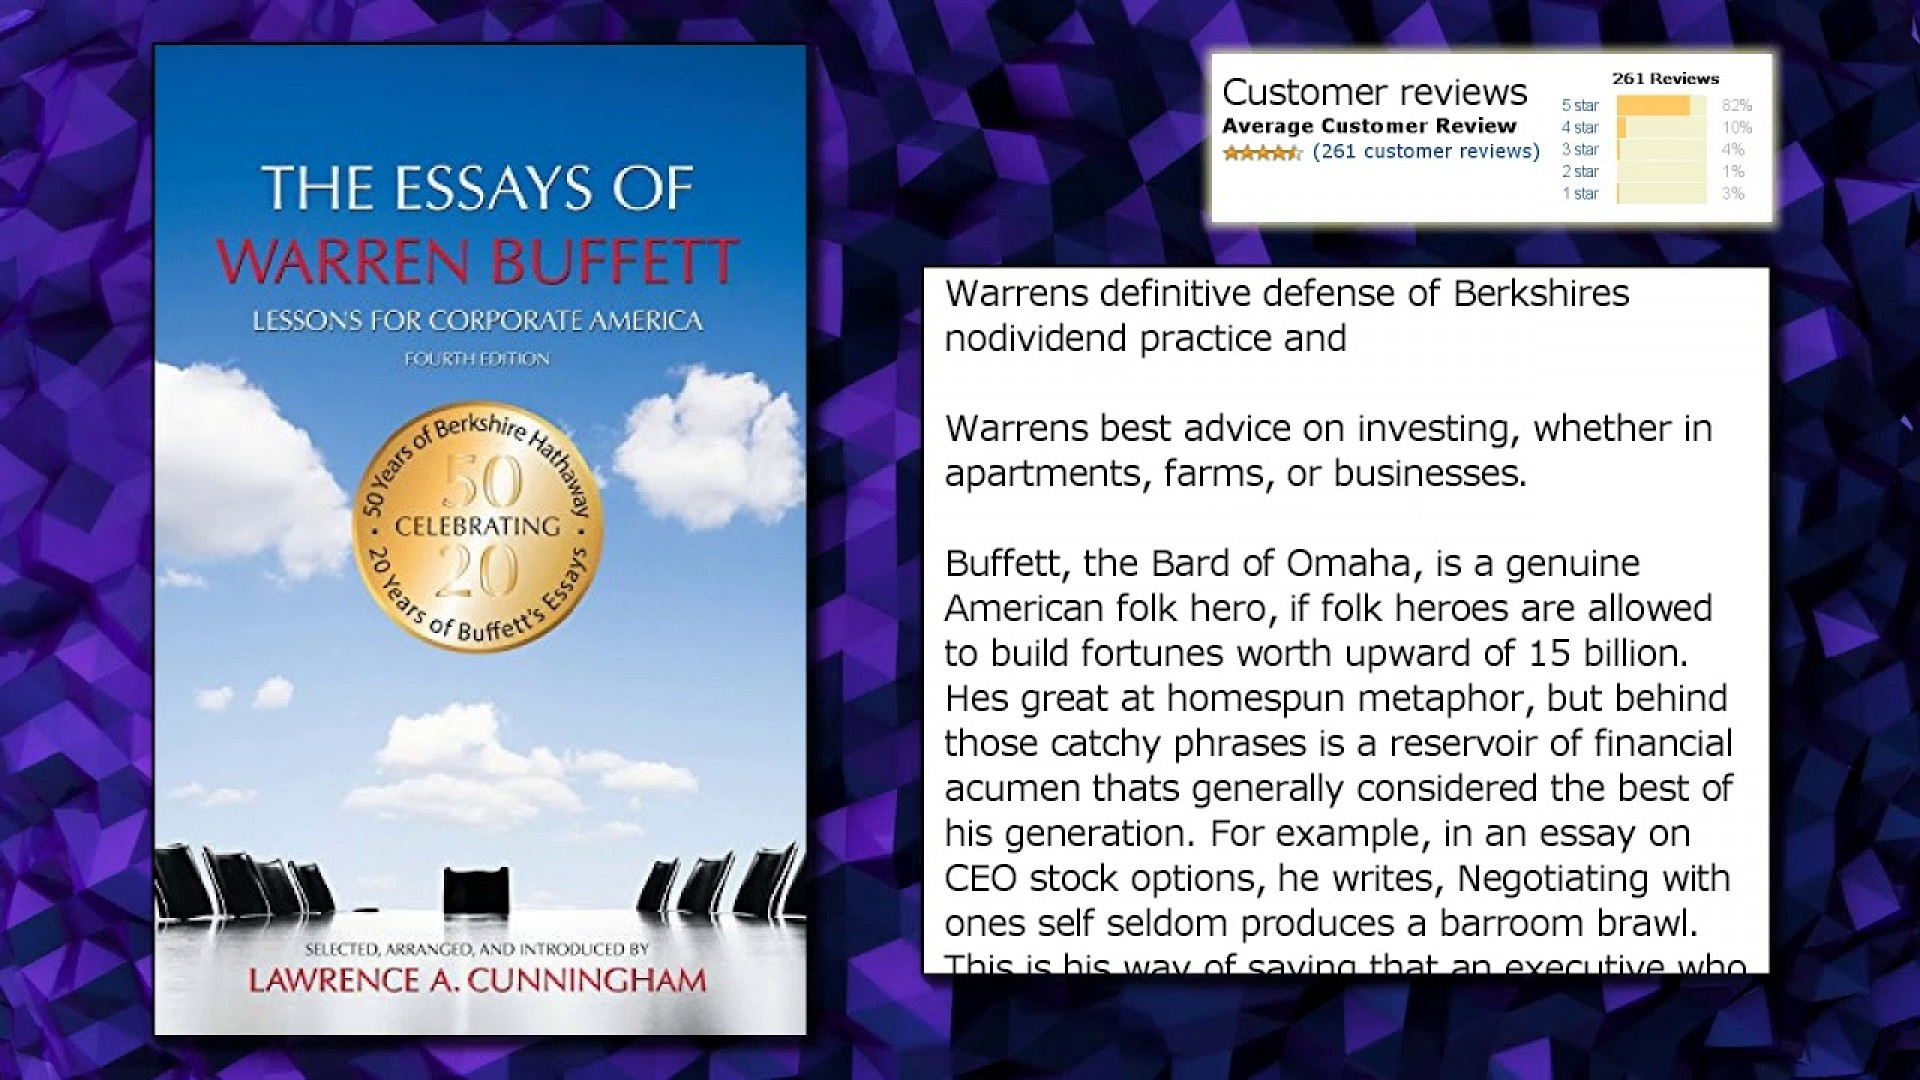 007 Essay Example Essays Of Warren Buffett Top 4th Edition The Pdf Free 1920